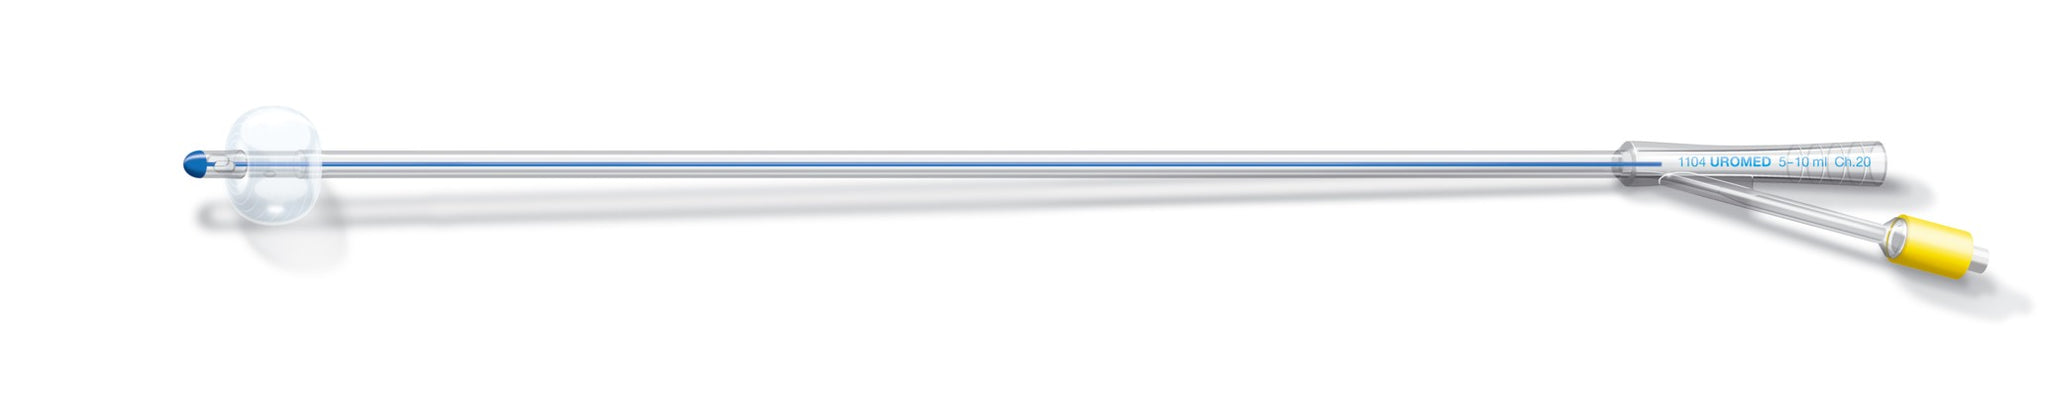 Prosil 2-Way Foley Catheter